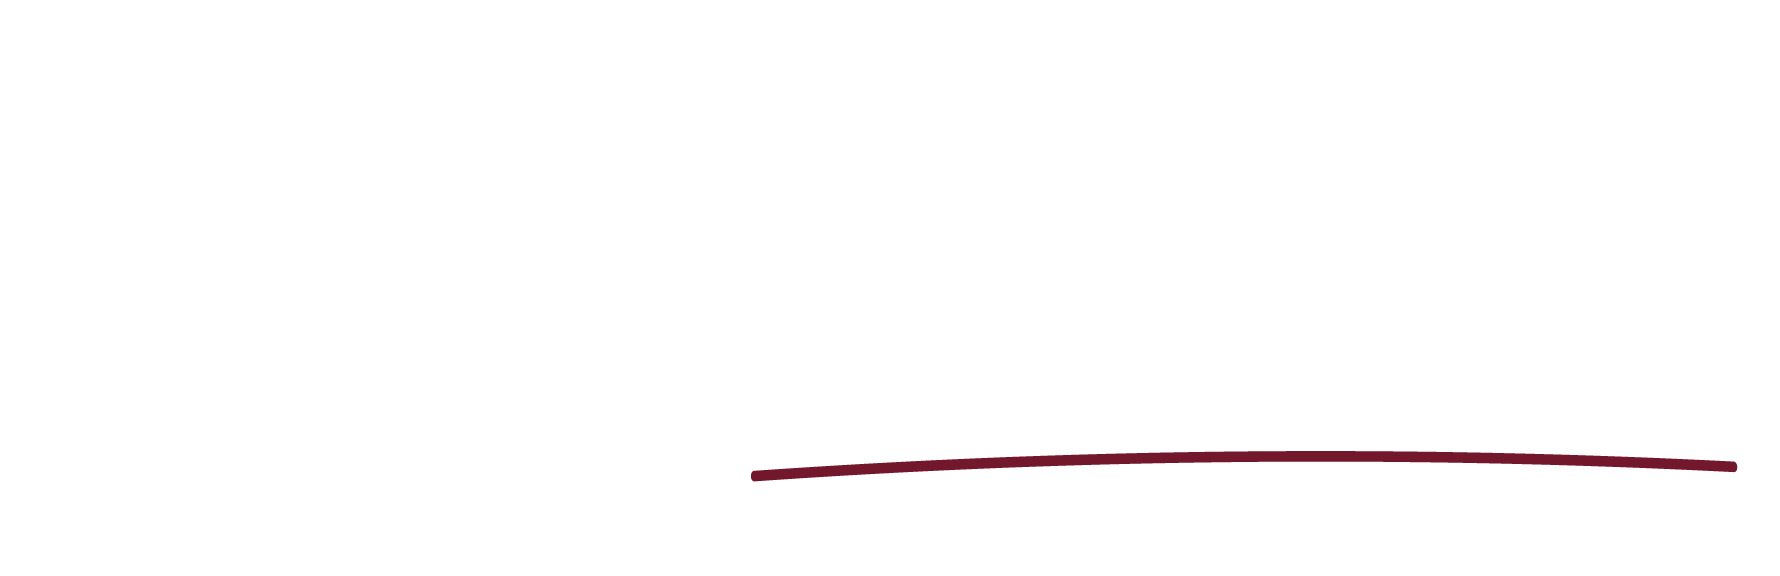 Amy for South Brisbane 2020